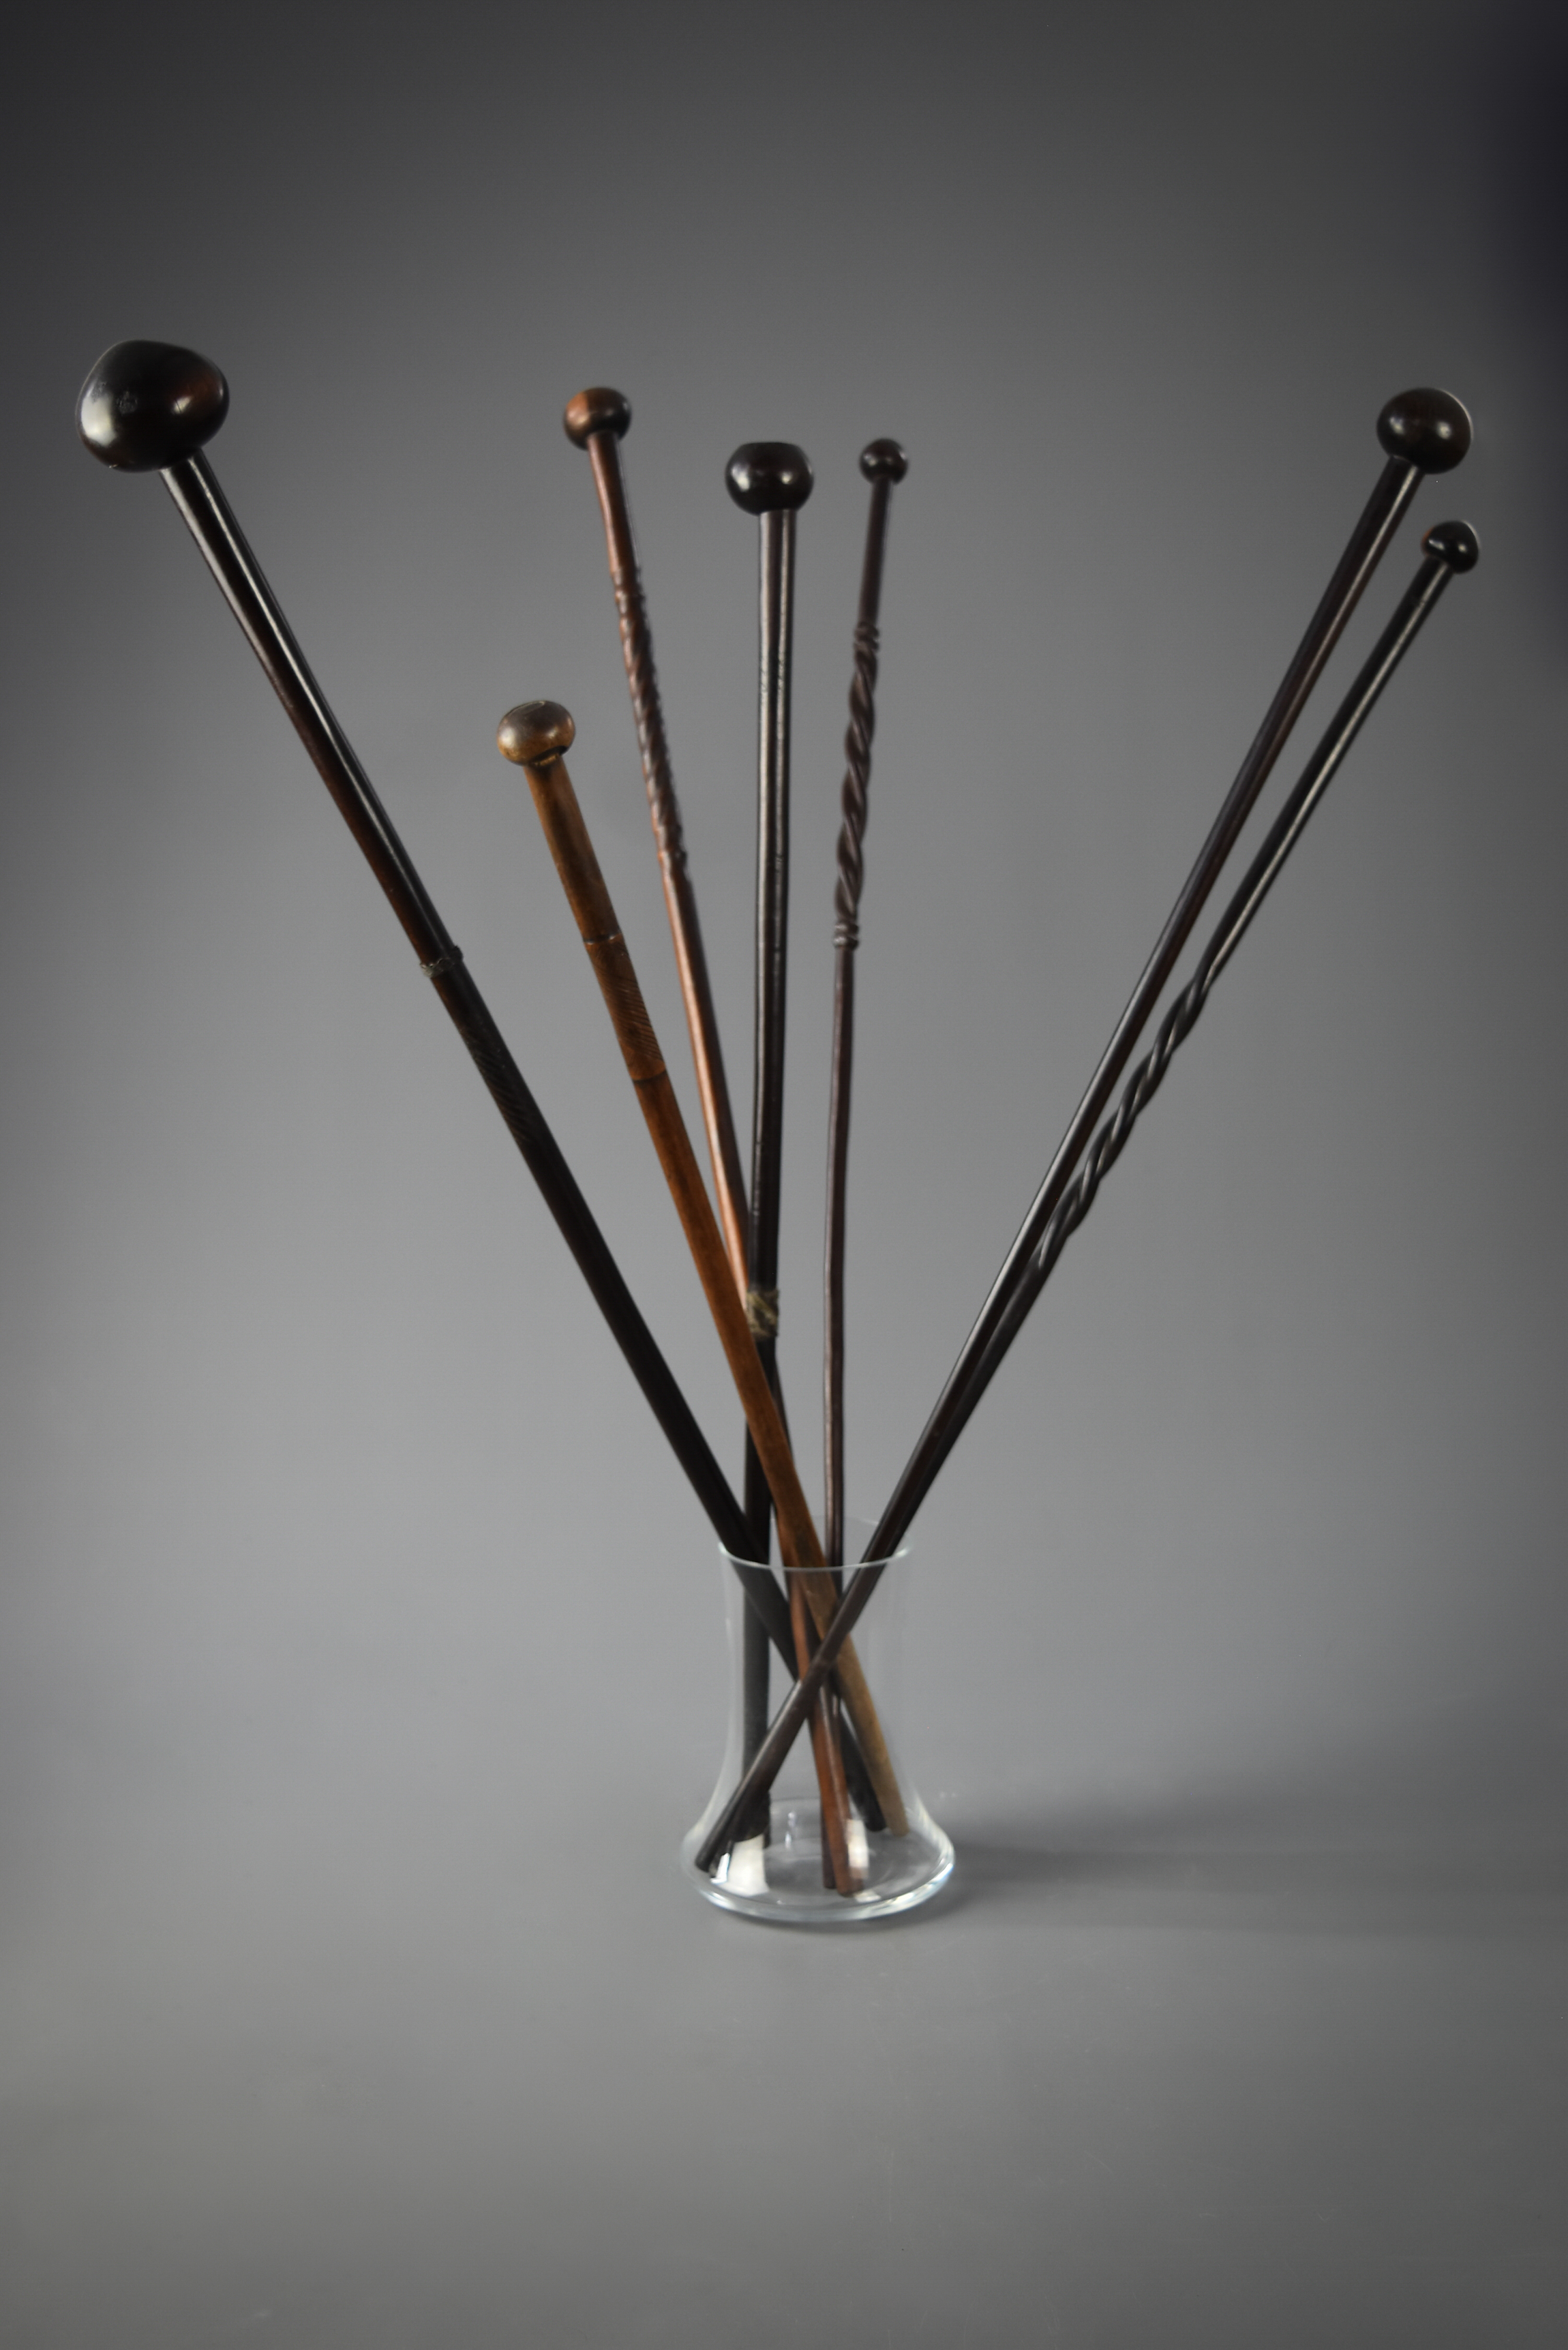 A collection of Zulu sticks and clubs